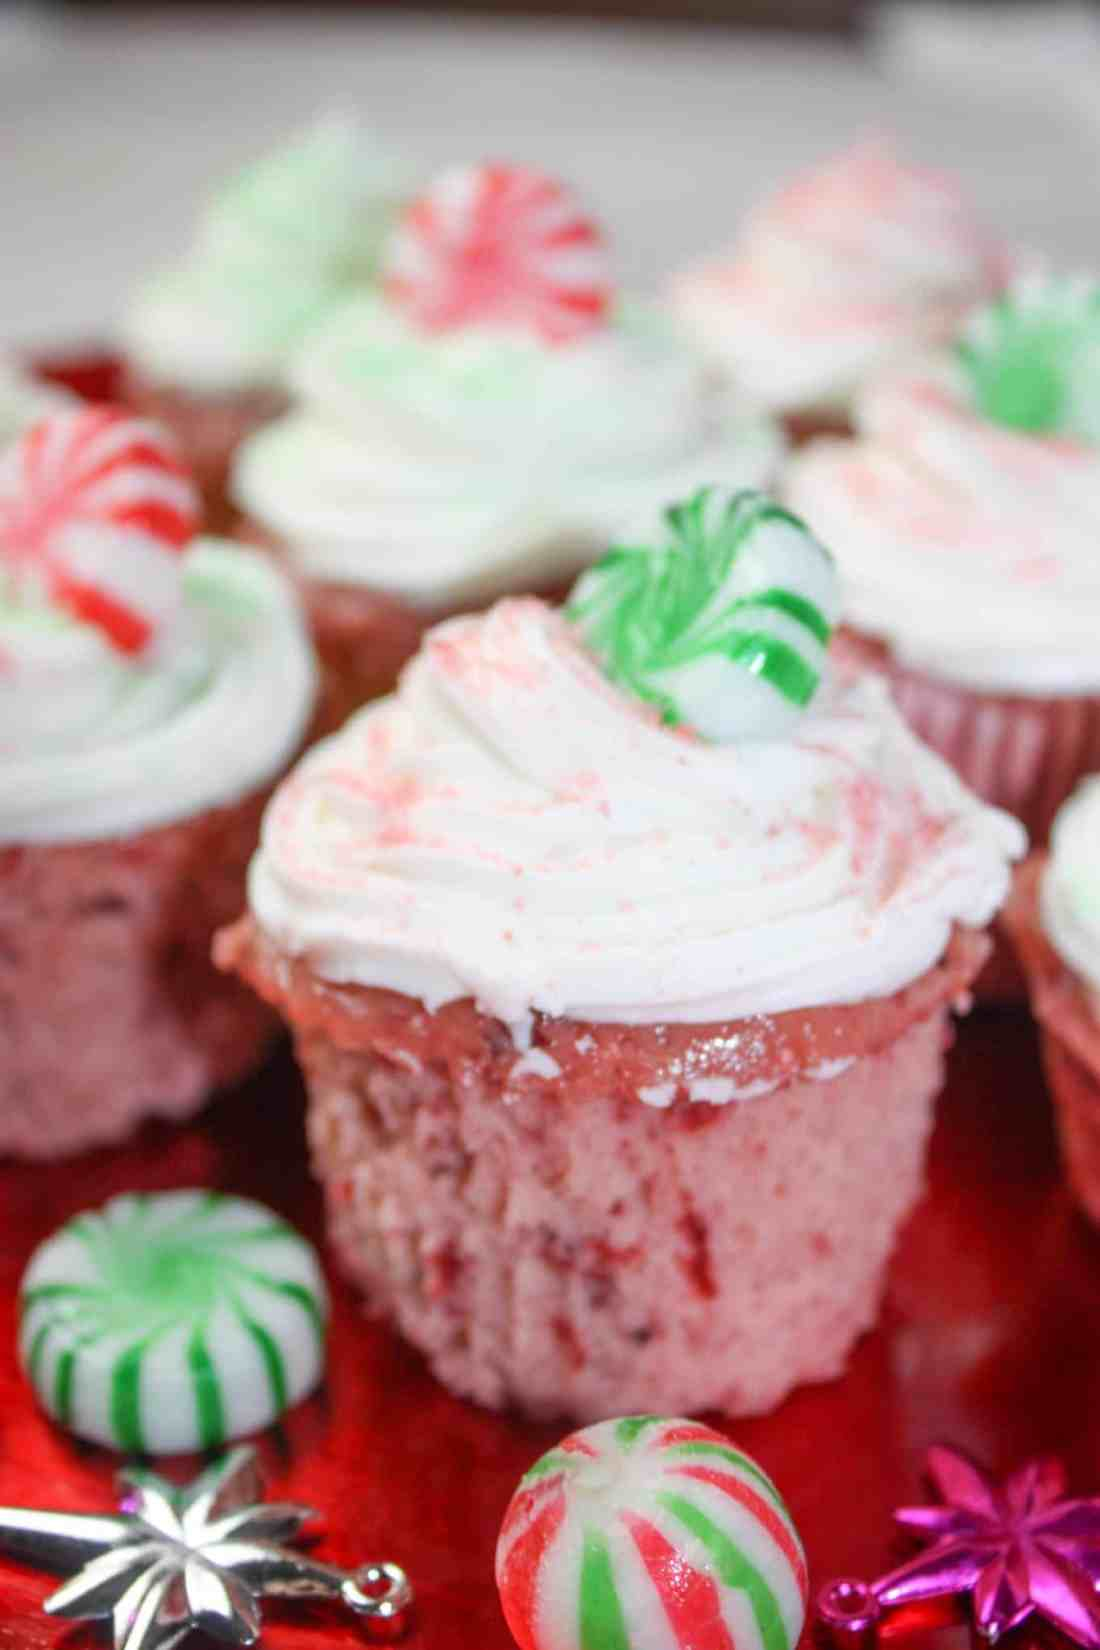 Microwave Cherry Cranberry Cupcakes are a quick and easy gluten free dessert.  This moist, colourful cake decorated to suit the season is a great addition to any holiday dessert tray.